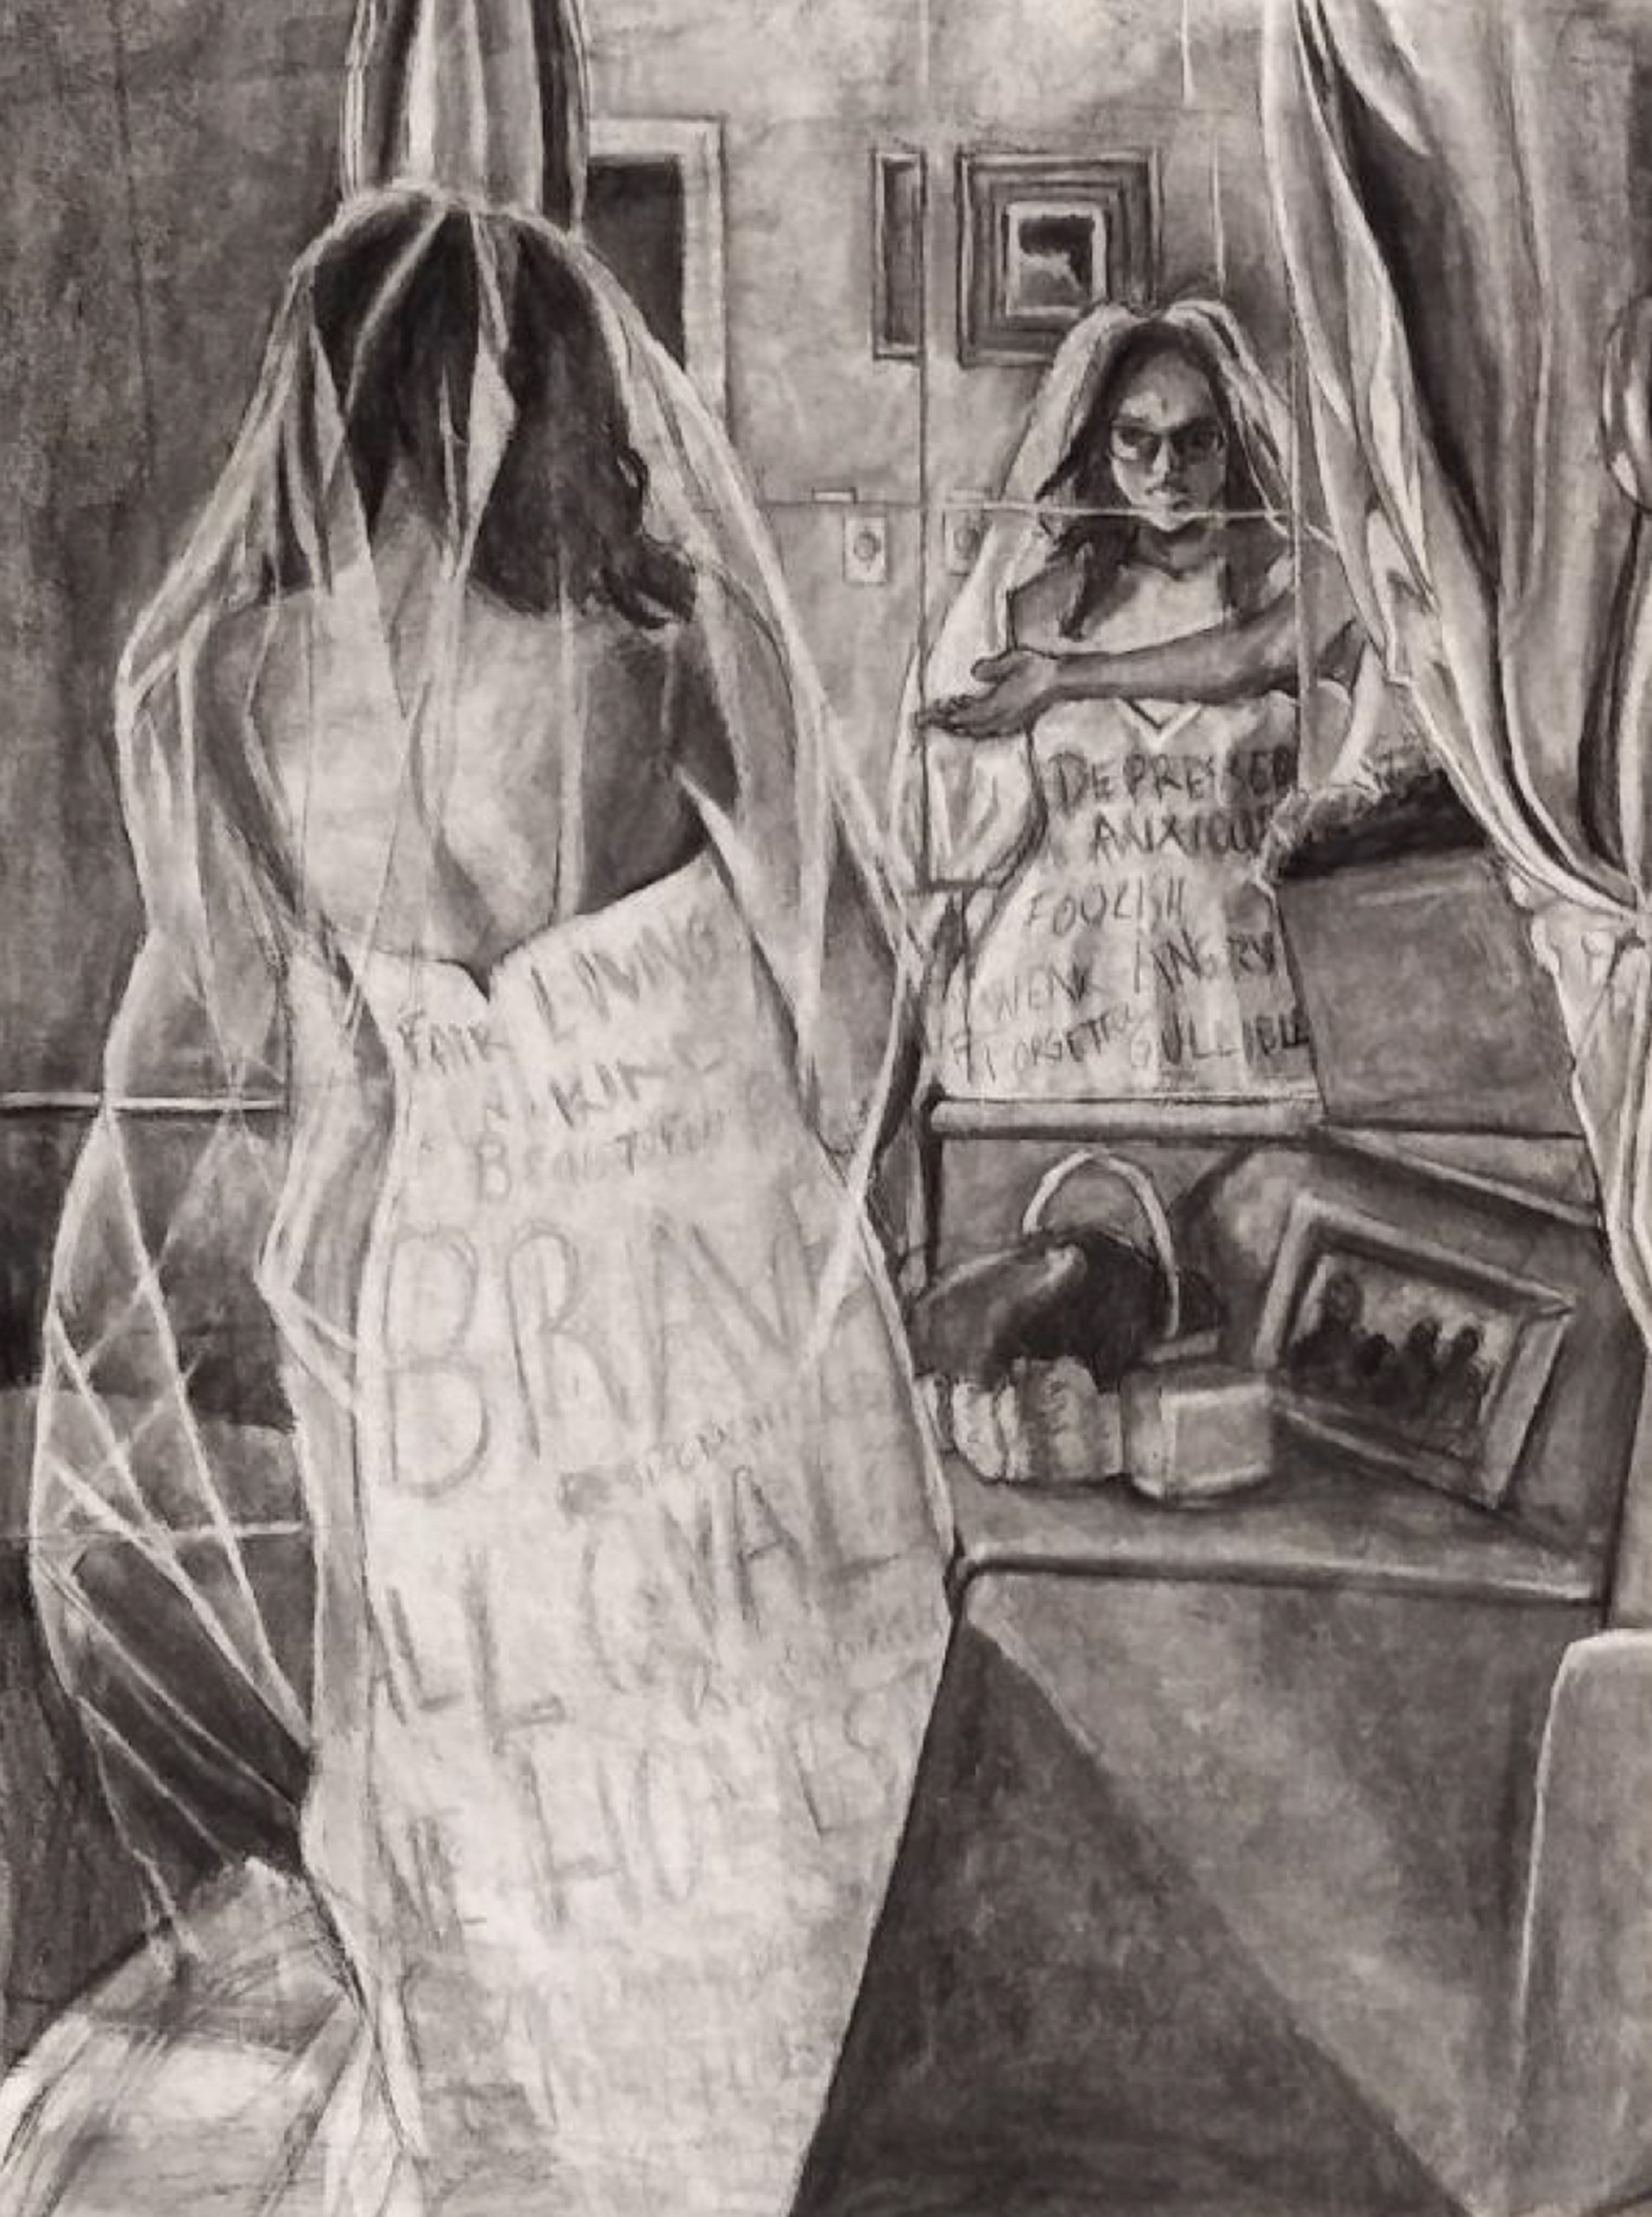 Black and white drawing of a young black woman looking in a mirror with negative words scrawled on her white dress